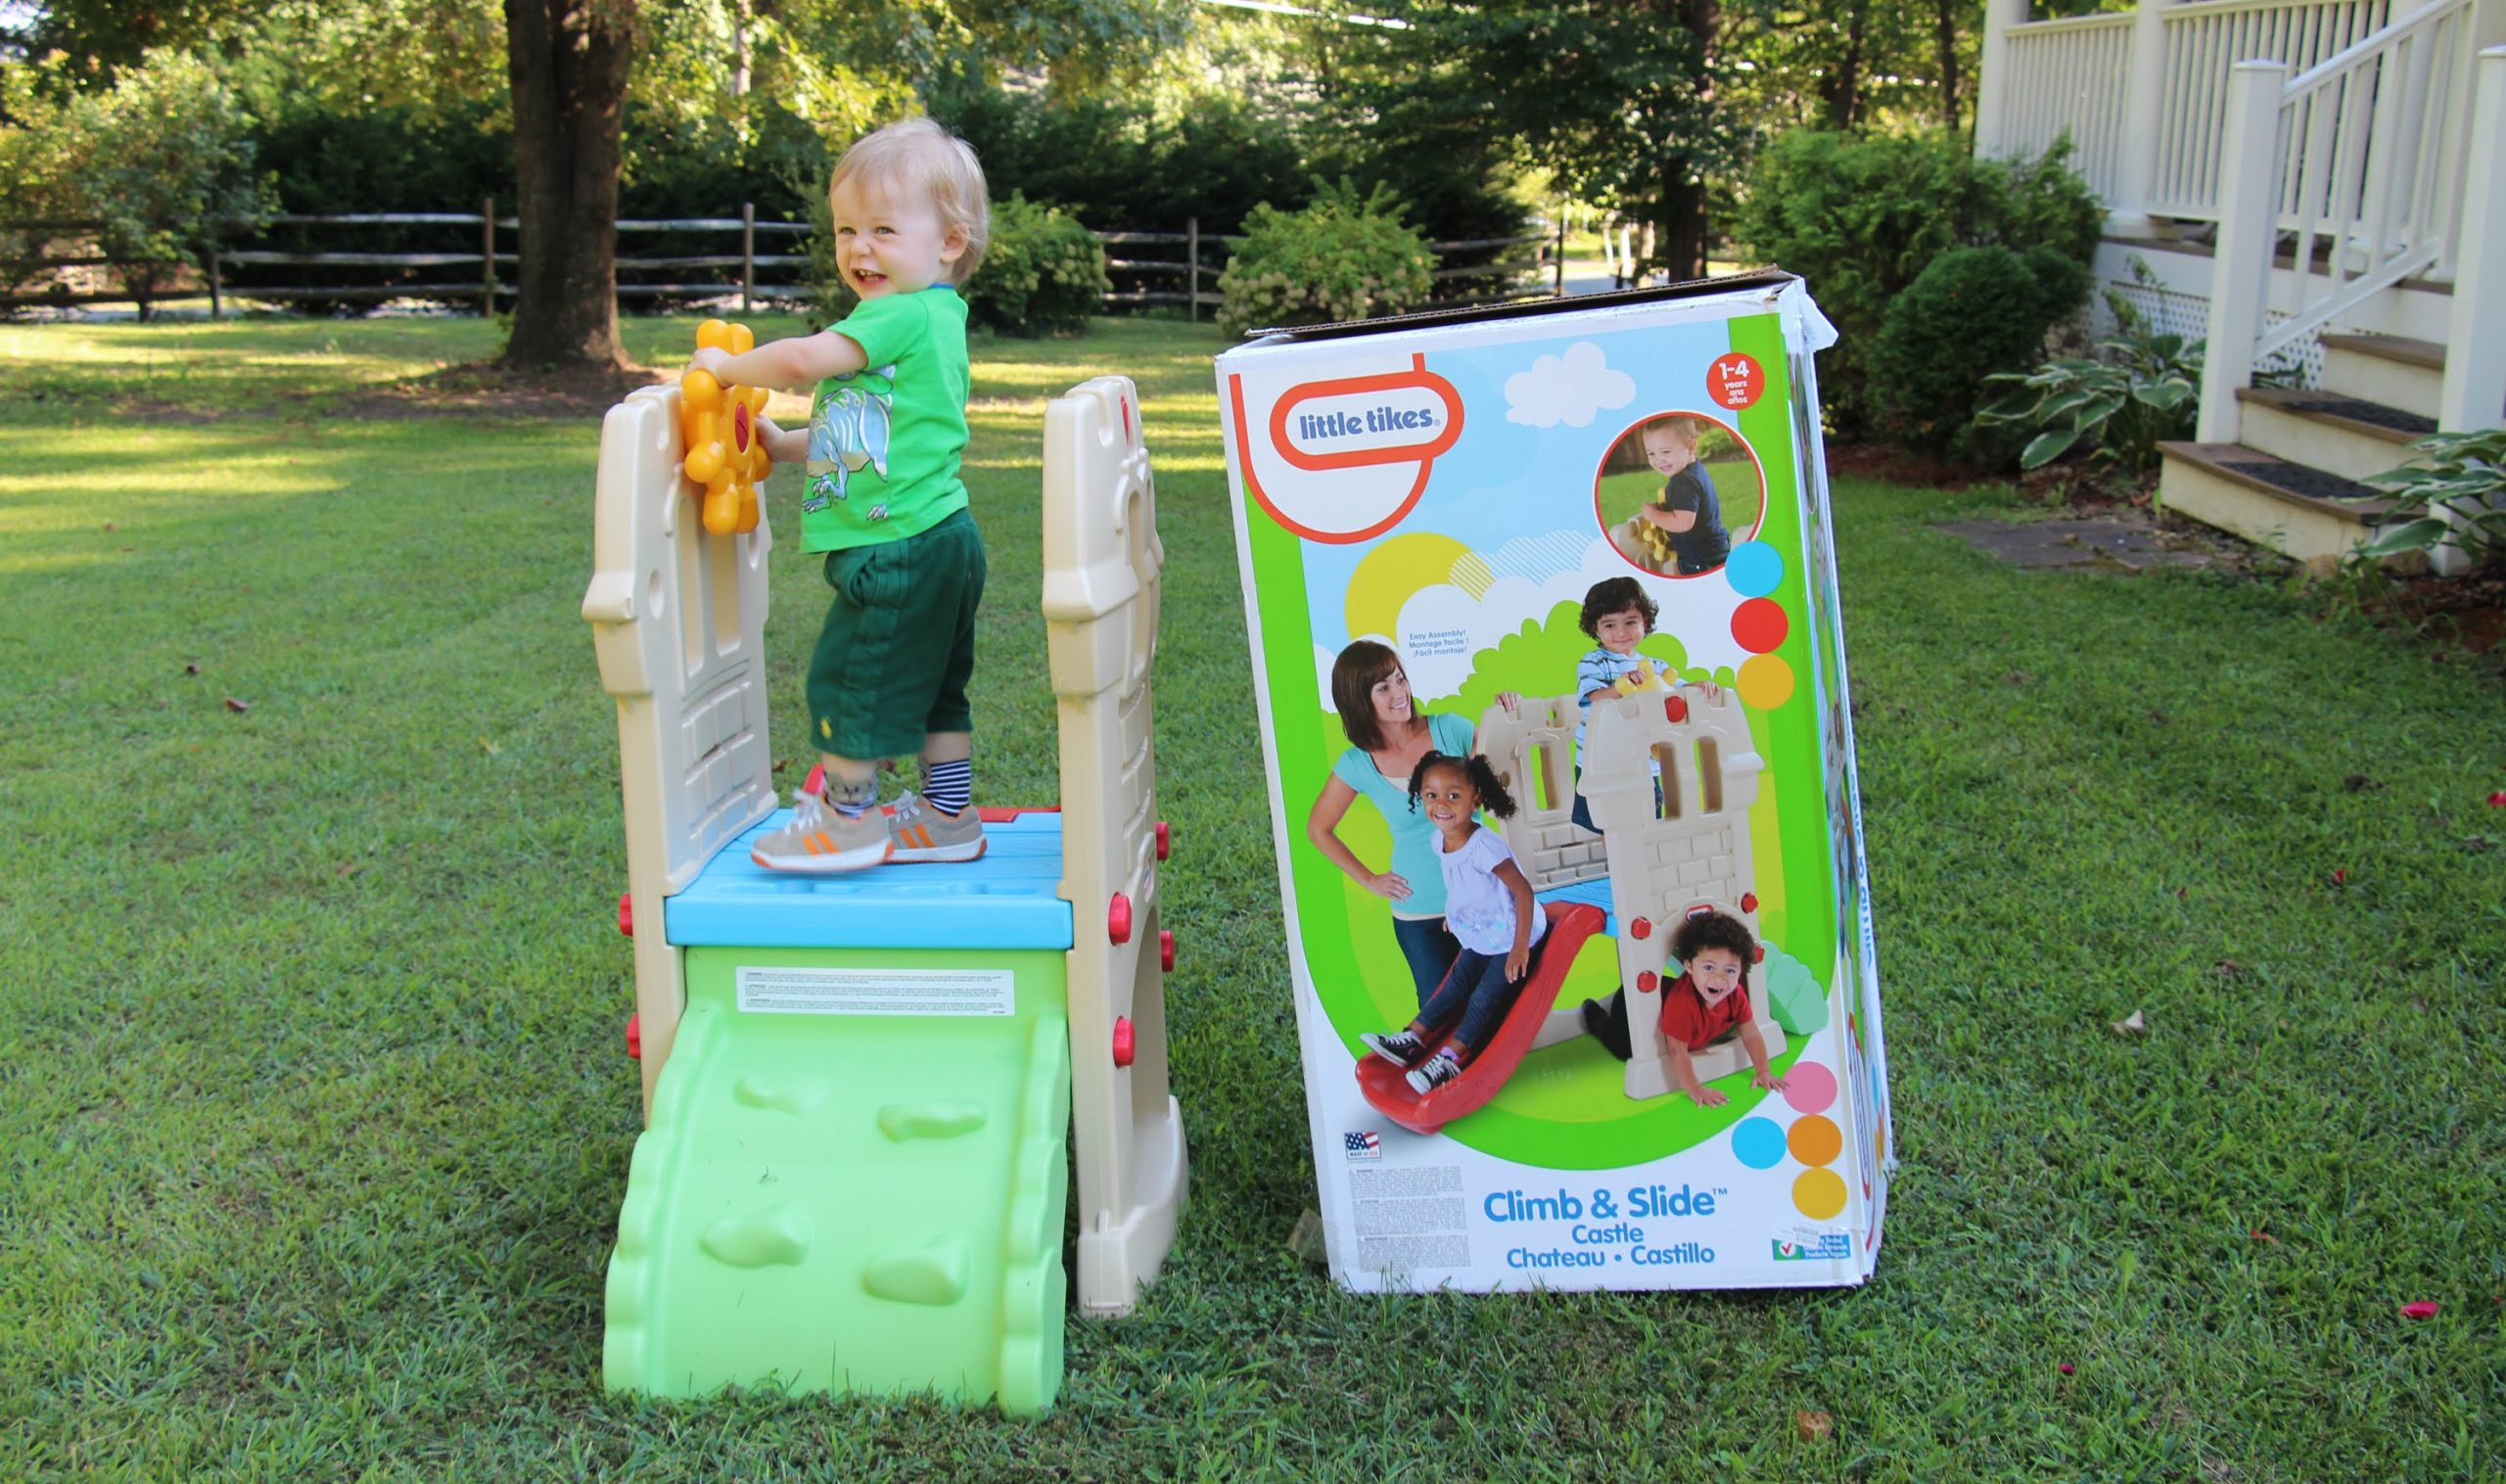 Top 10 Best Little Tikes Hide and Slide Comparison